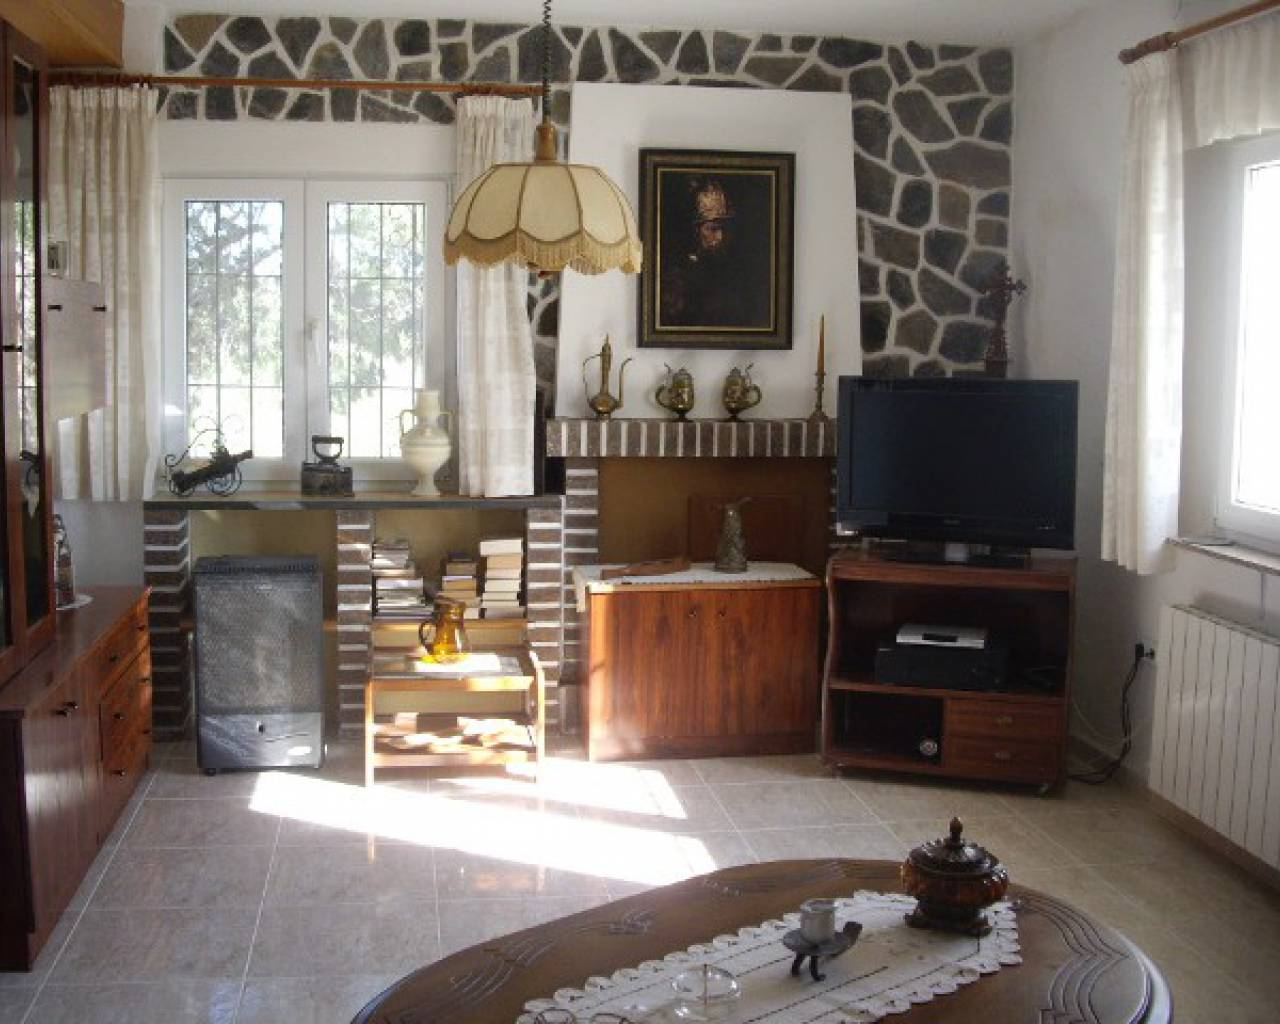 Sale - Country Property - Valle del Sol